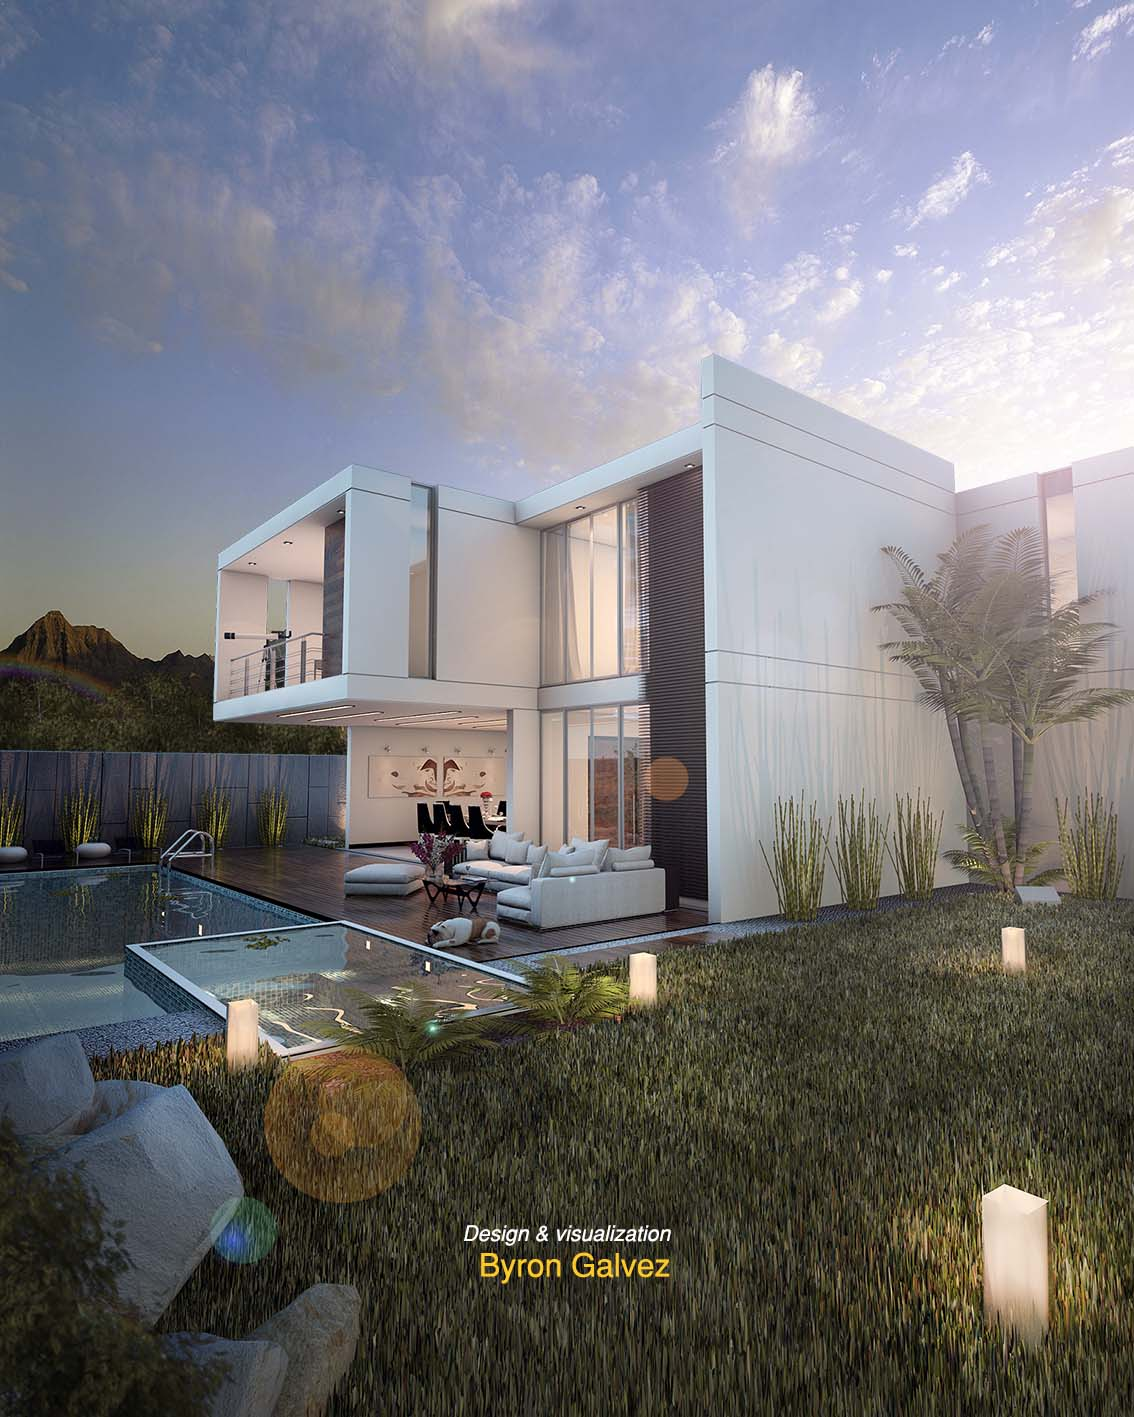 House With Pool 38 Sunset Scene Vray 2 0 Render By Byron Galvez